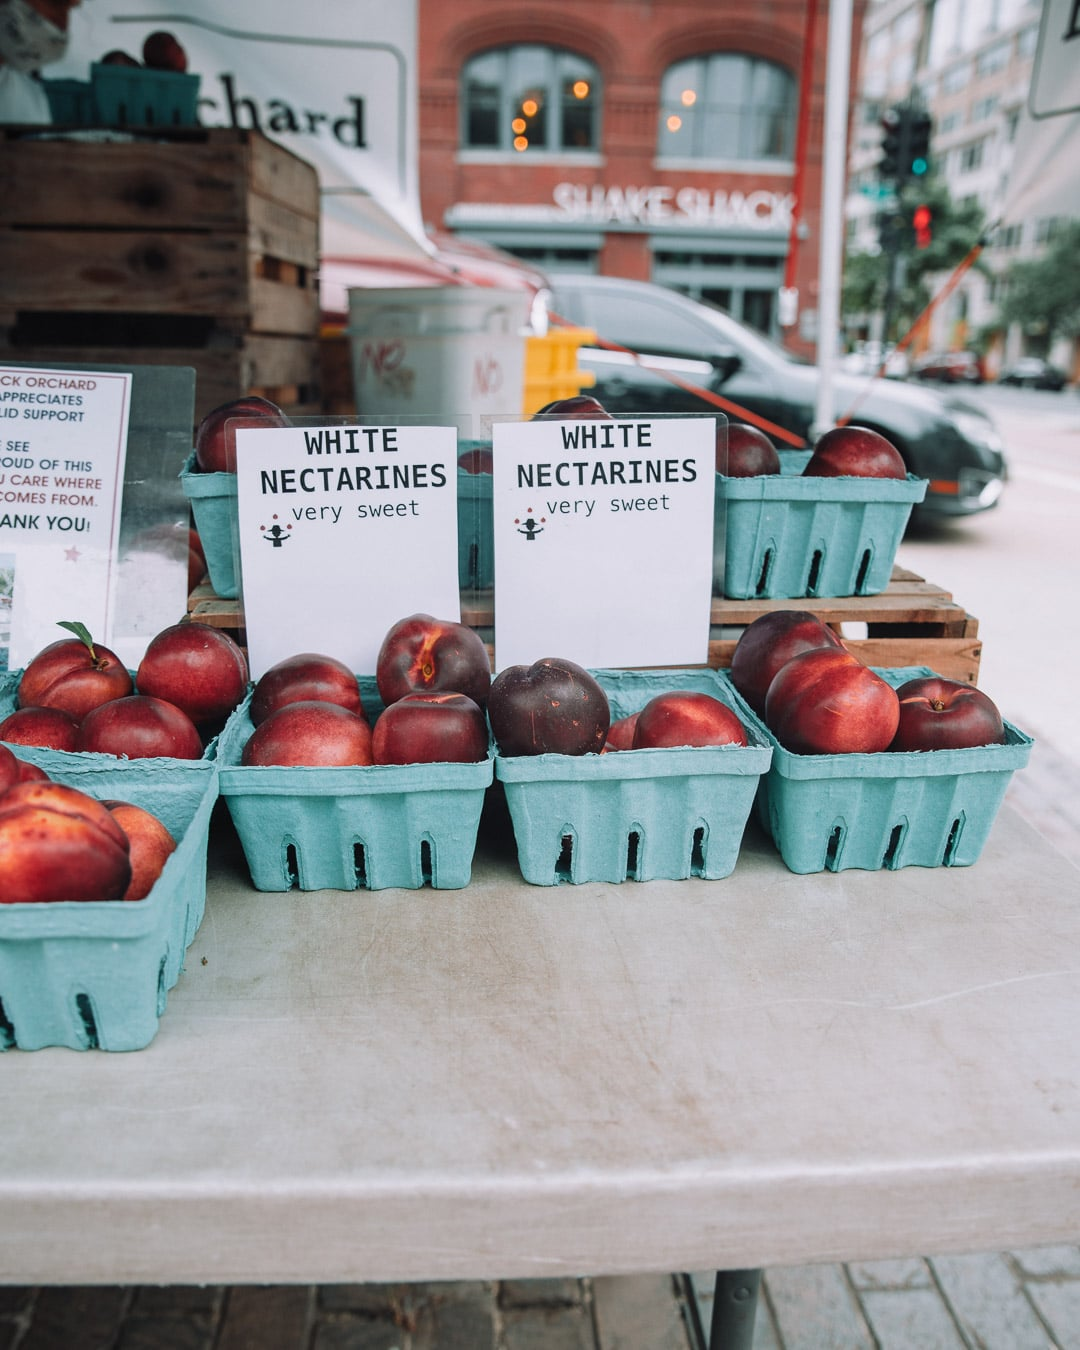 White nectarines in a cartons on a table at the farmers market.